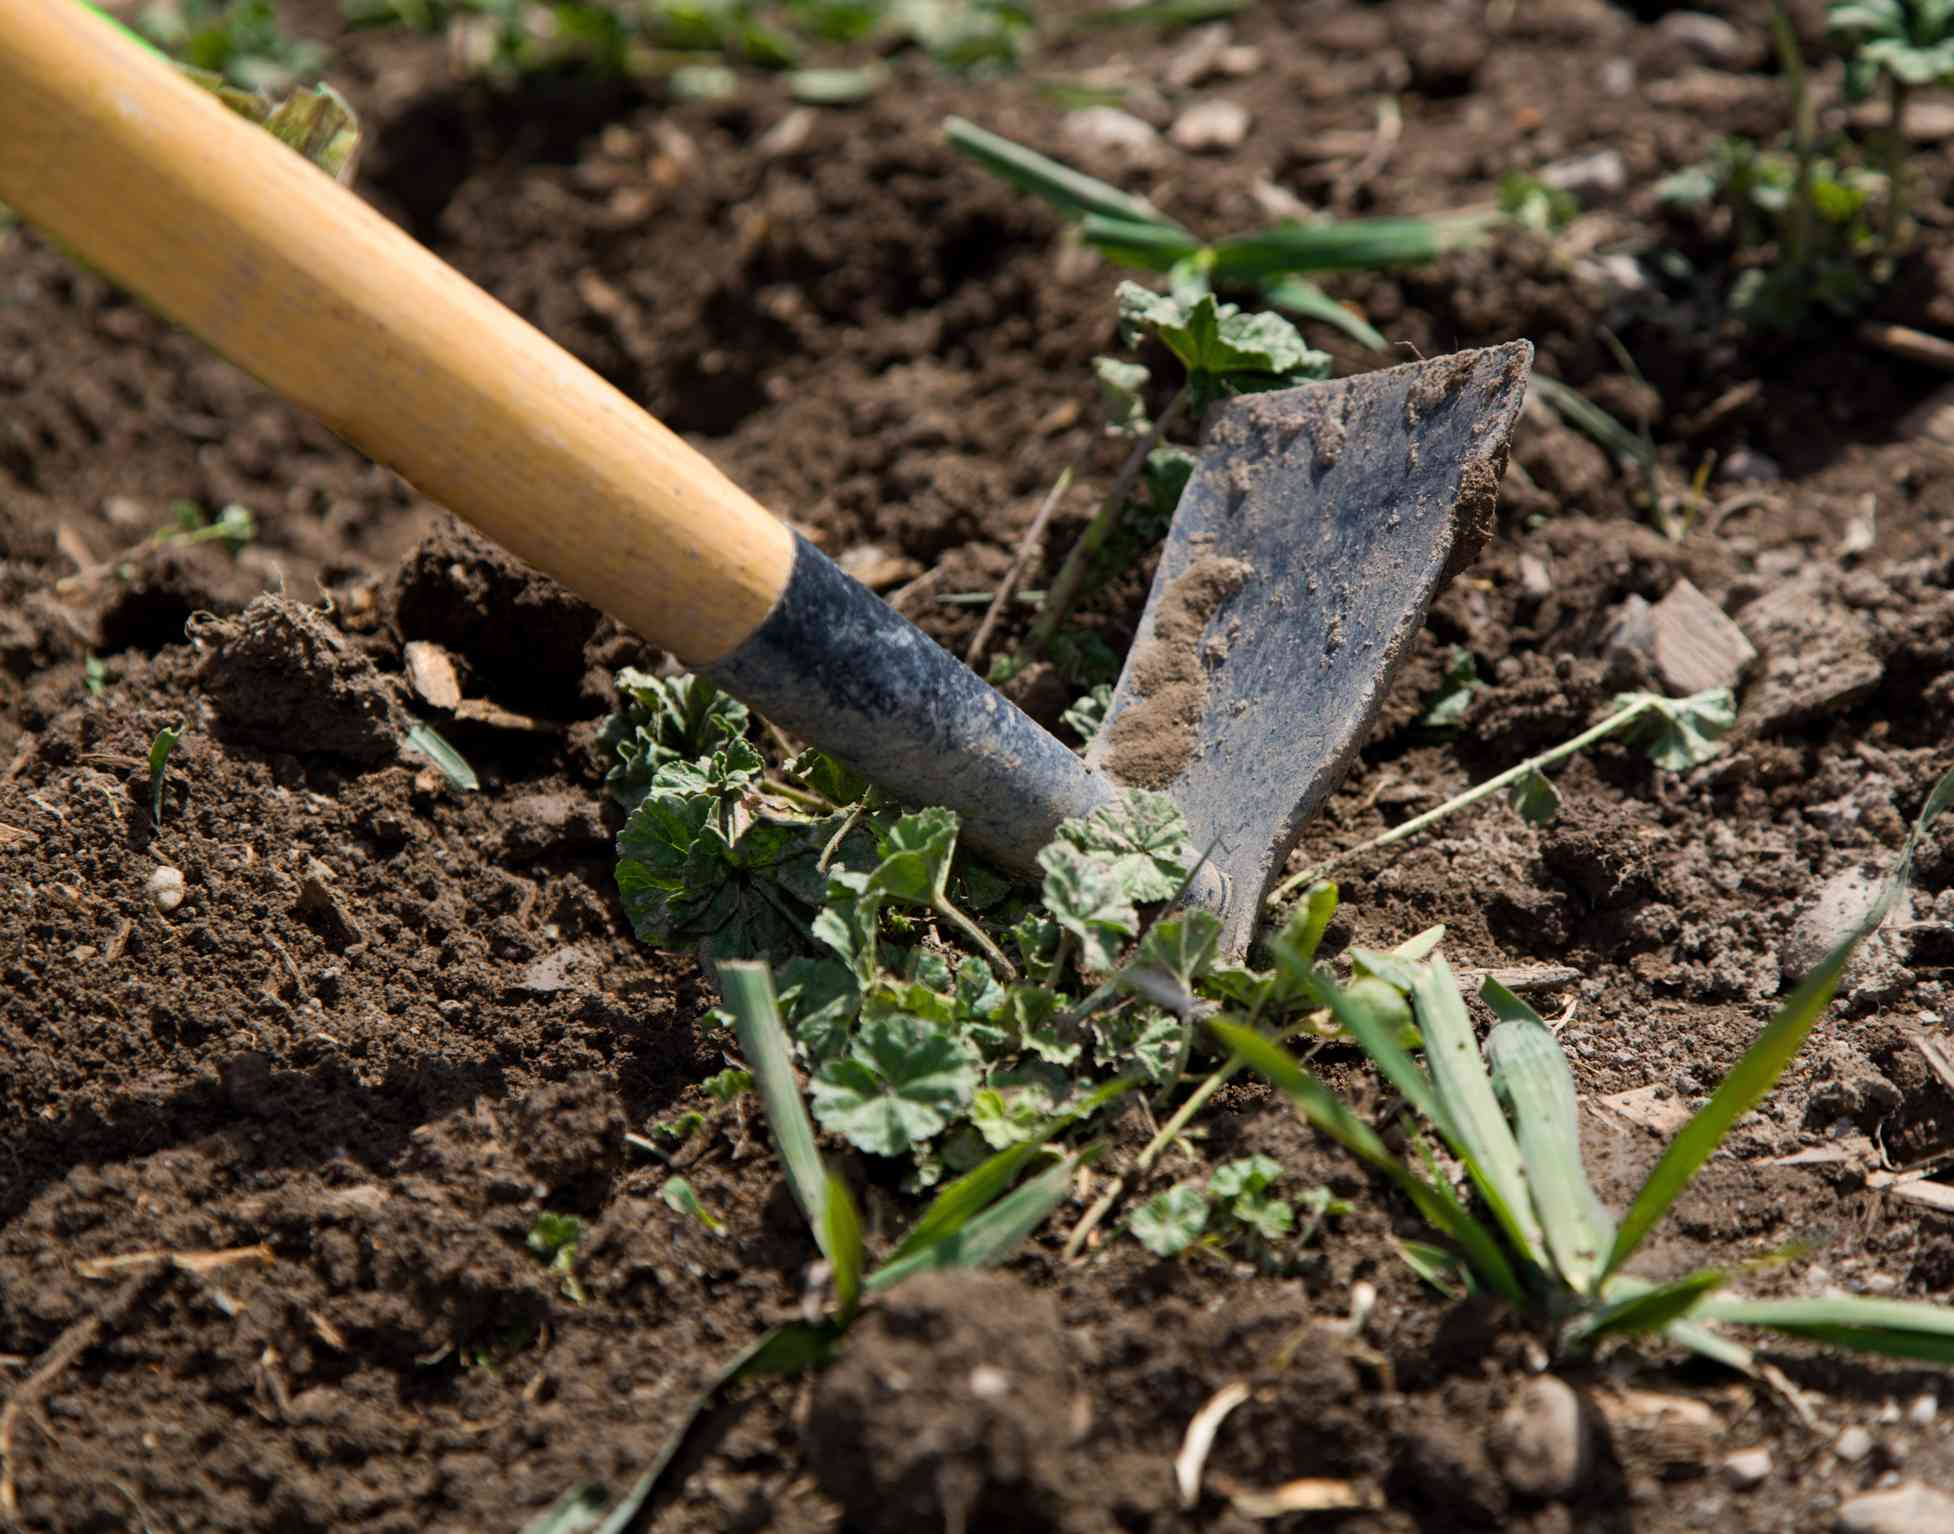 Digging up the soil brings seeds to the surface